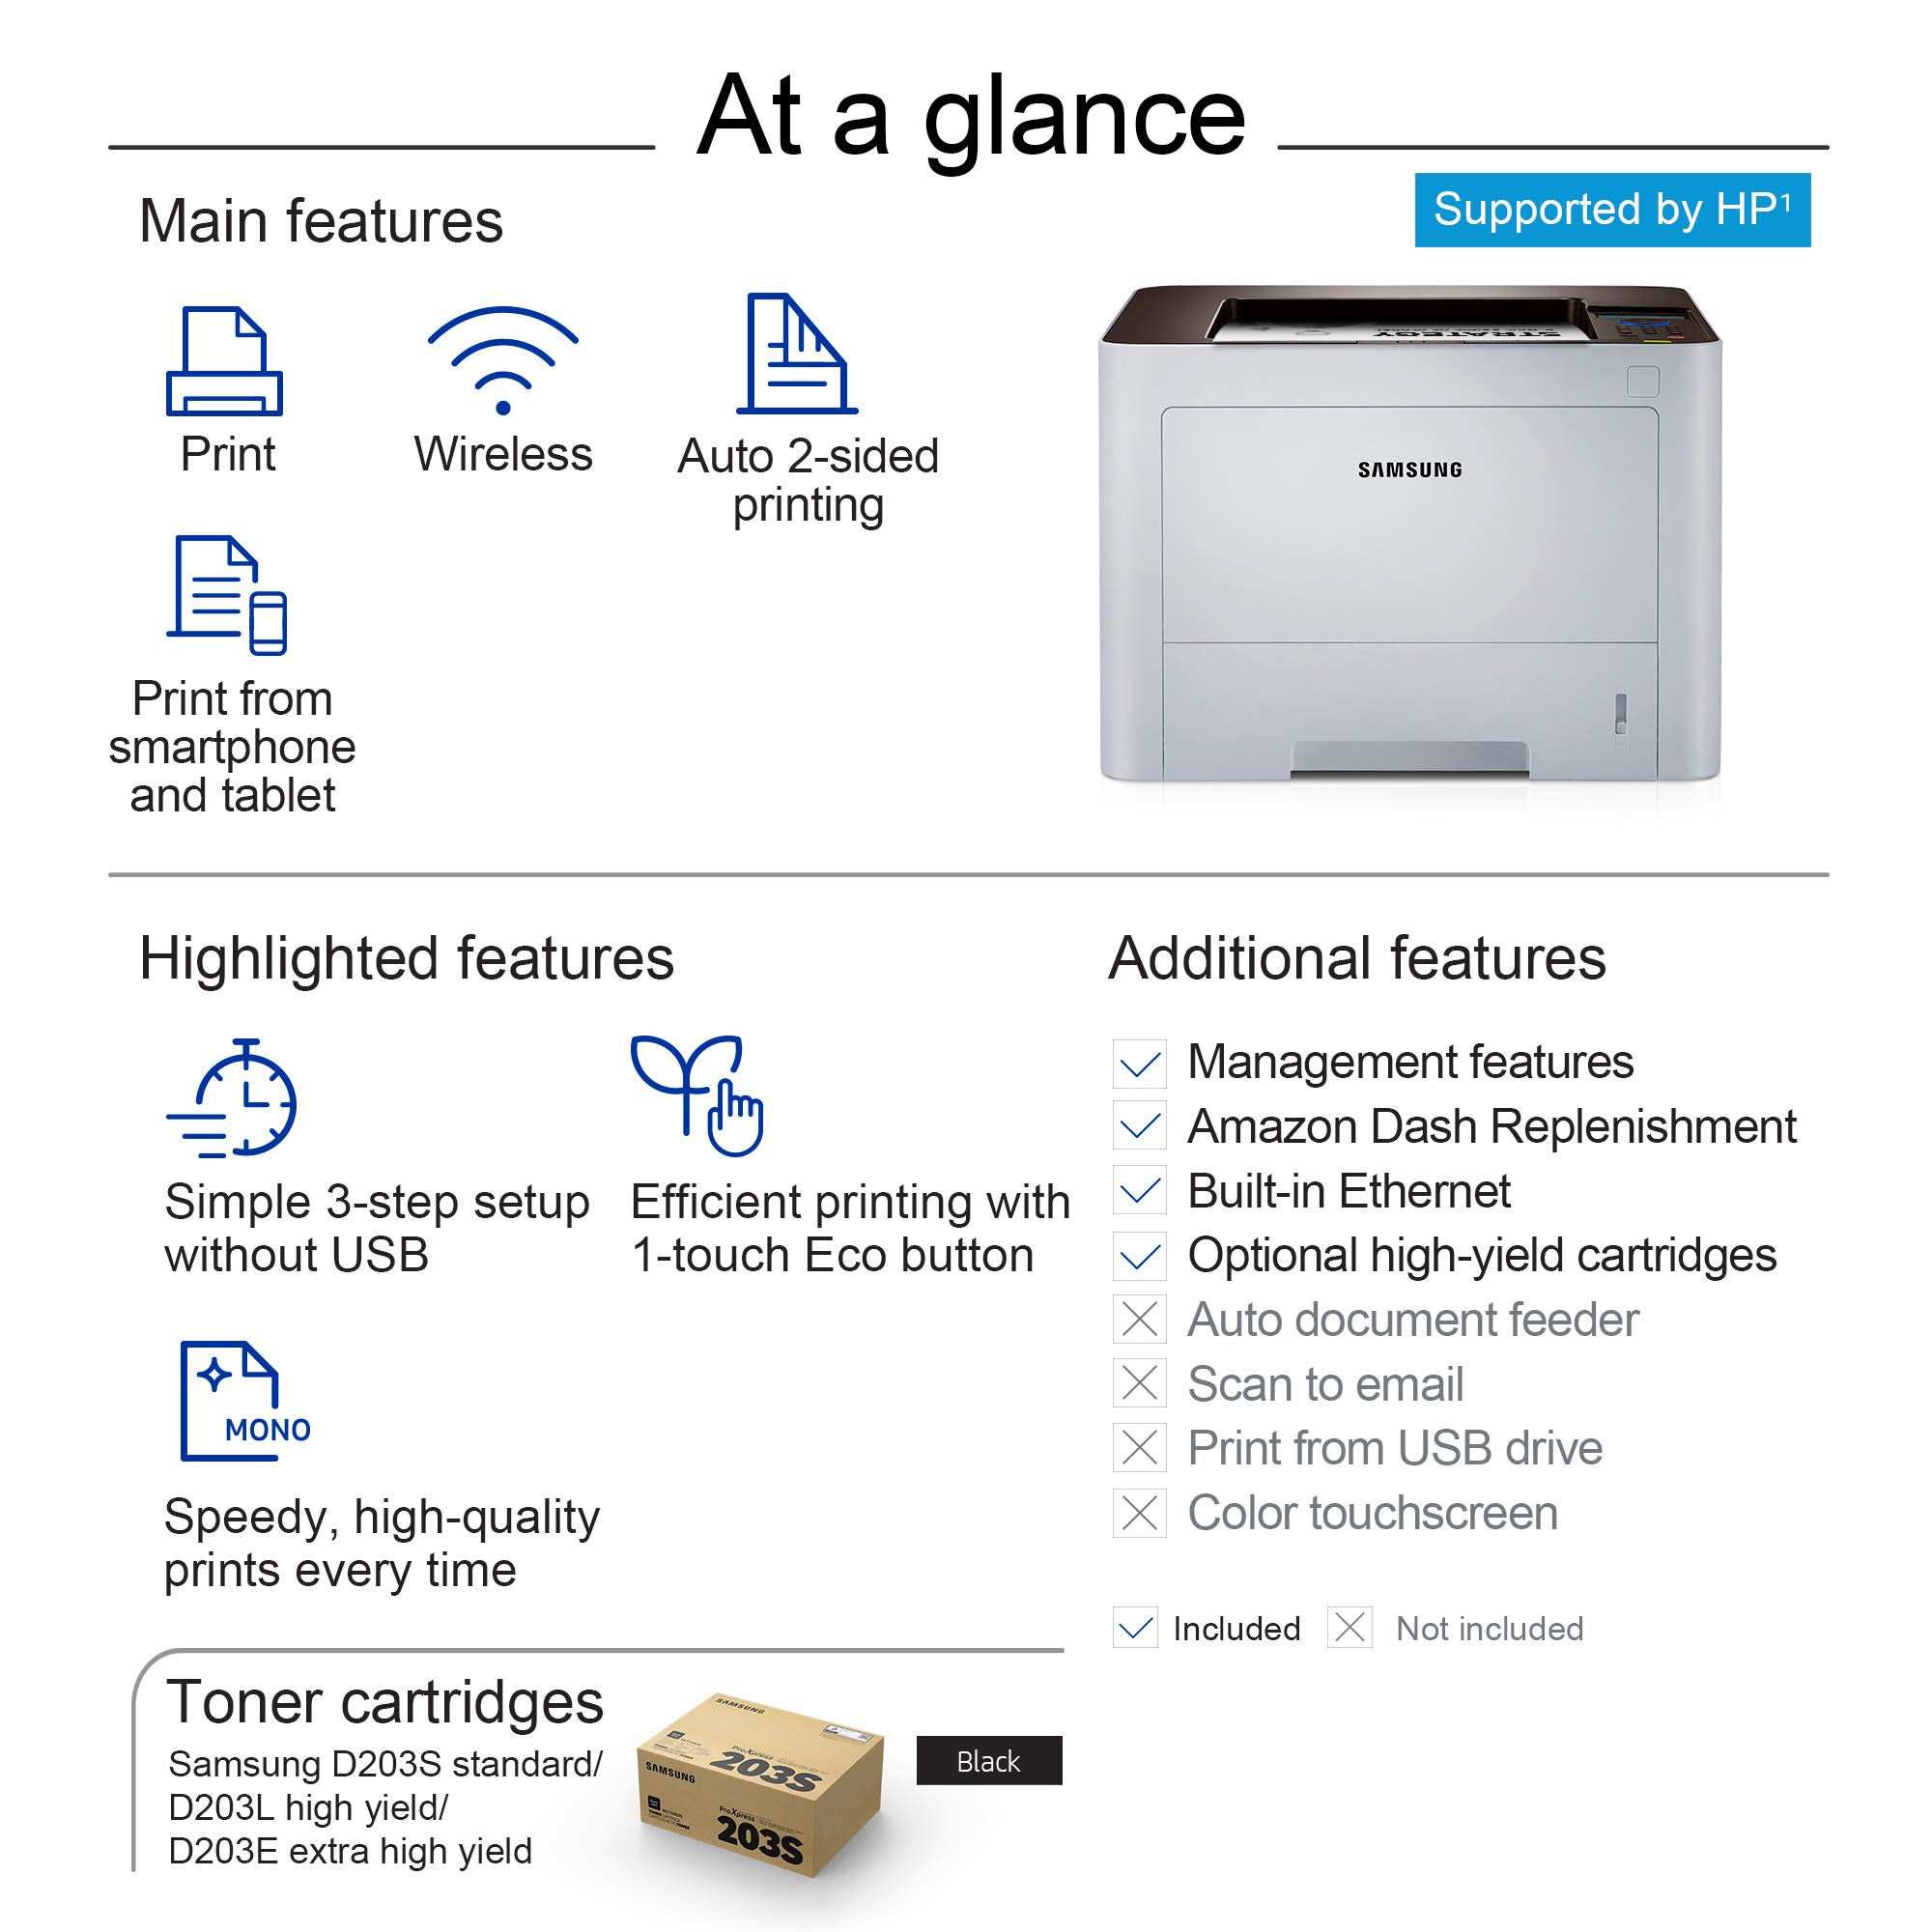 Samsung ProXpress M3820DW Wireless Monochrome Laser Printer with Mobile Connectivity, Duplex Printing, Print Security & Management Tools, Amazon Dash Replenishment Enabled (SS372C) by HP (Image #6)